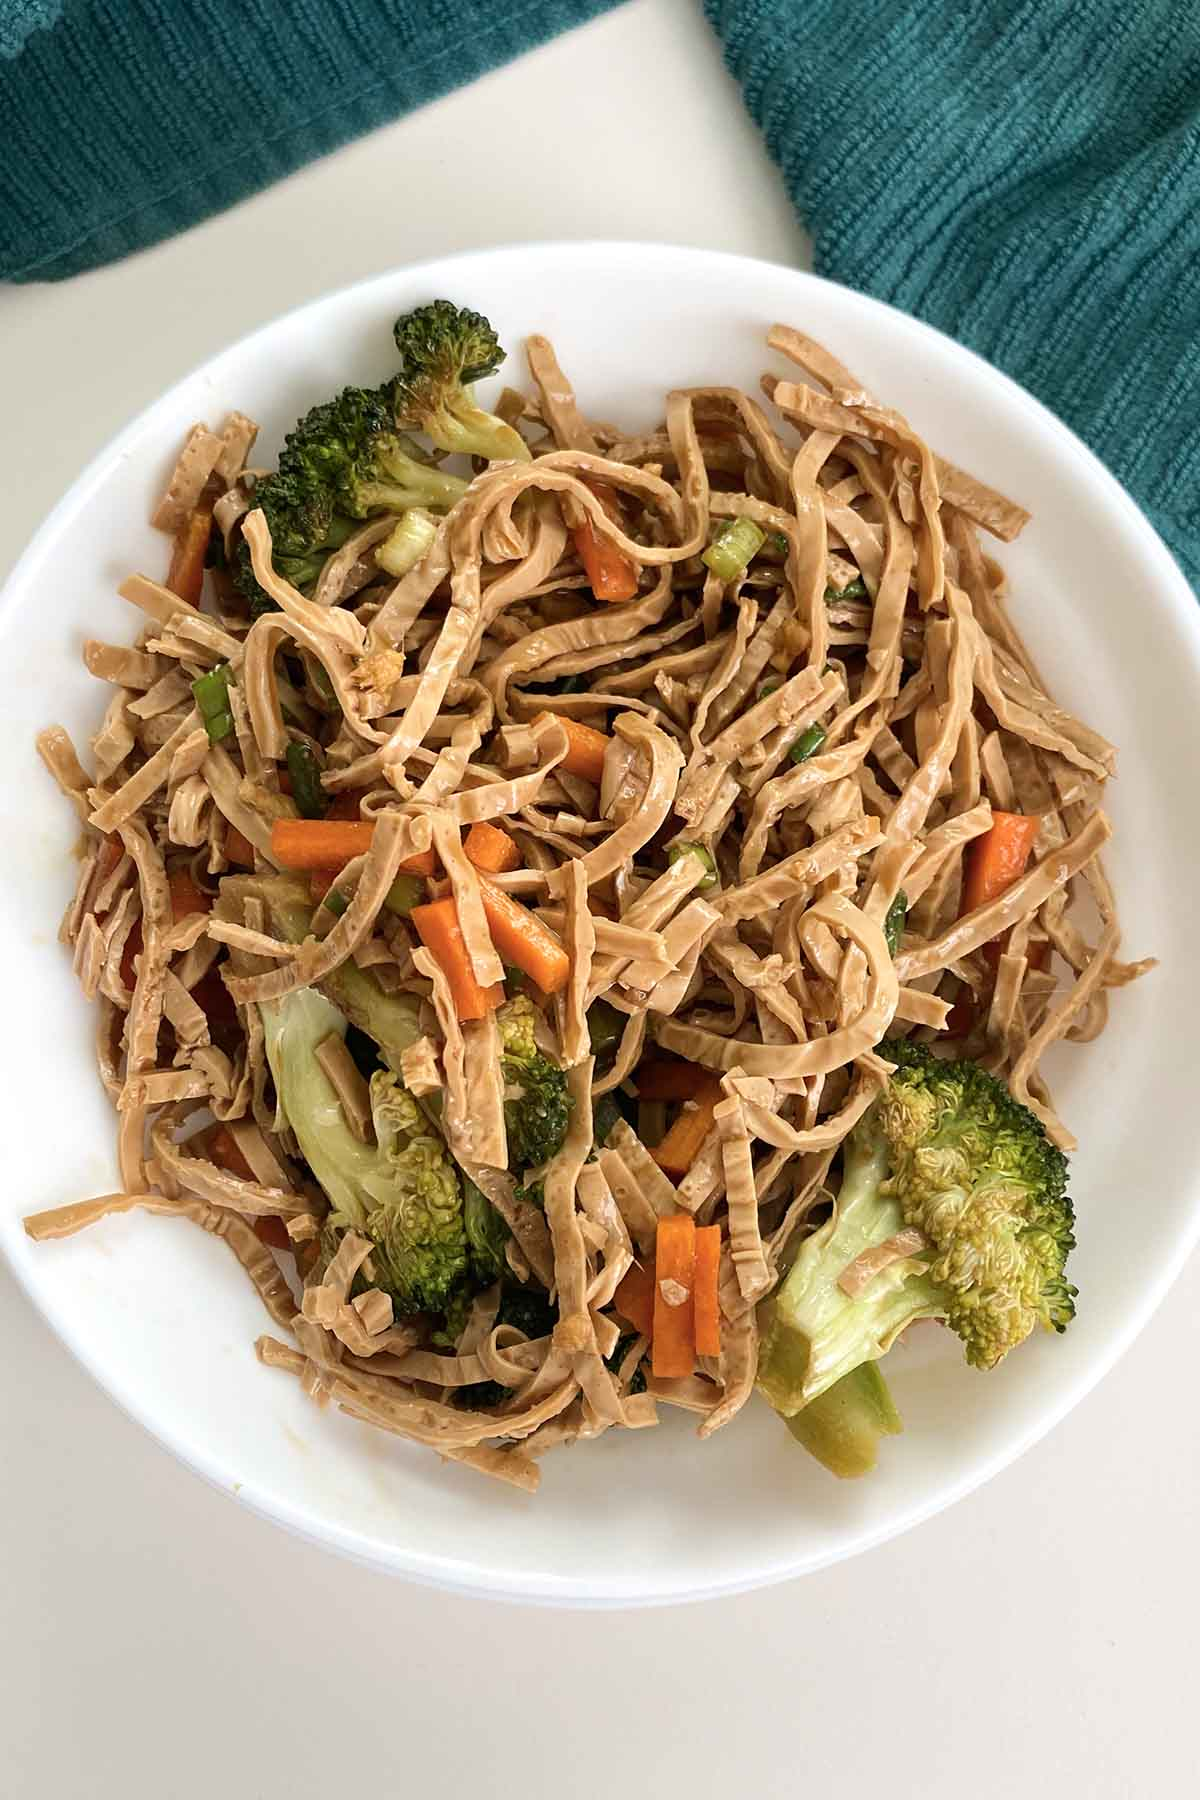 cold salad with tofu noodles, broccoli, carrots, and green onion